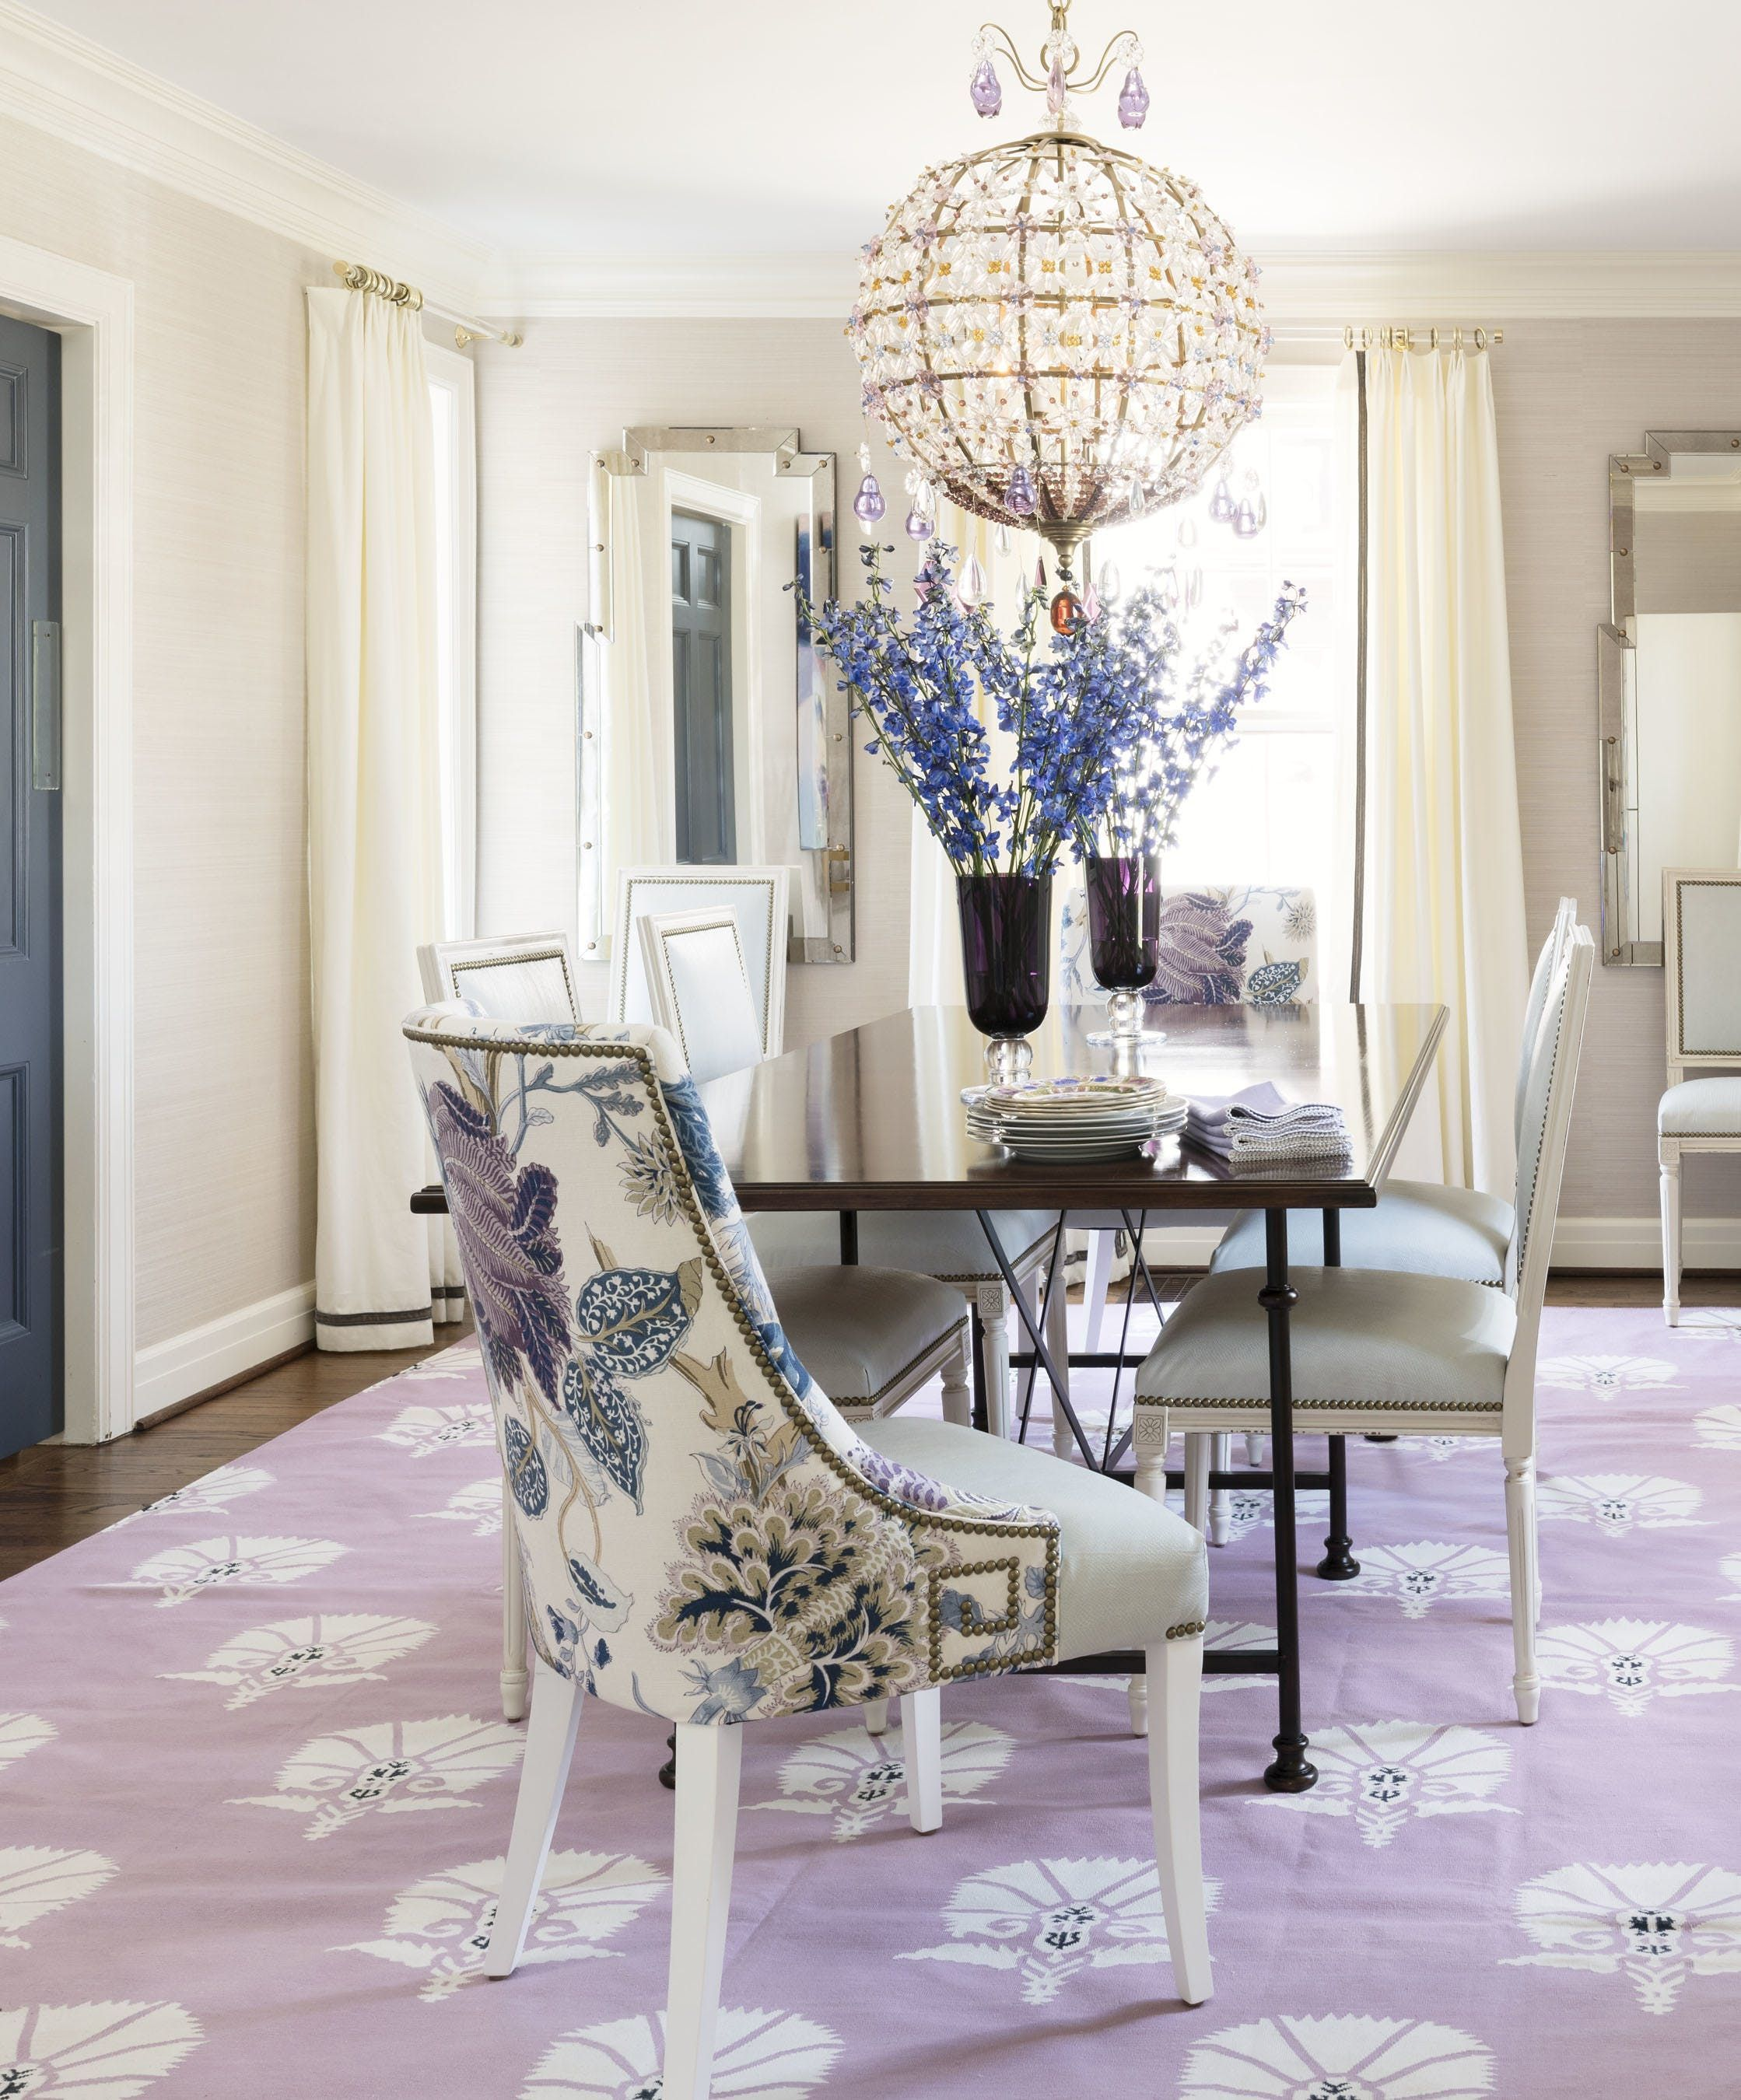 Beautiful Casual Dining Room: Image By Alexandra Holmes On Home Decorating